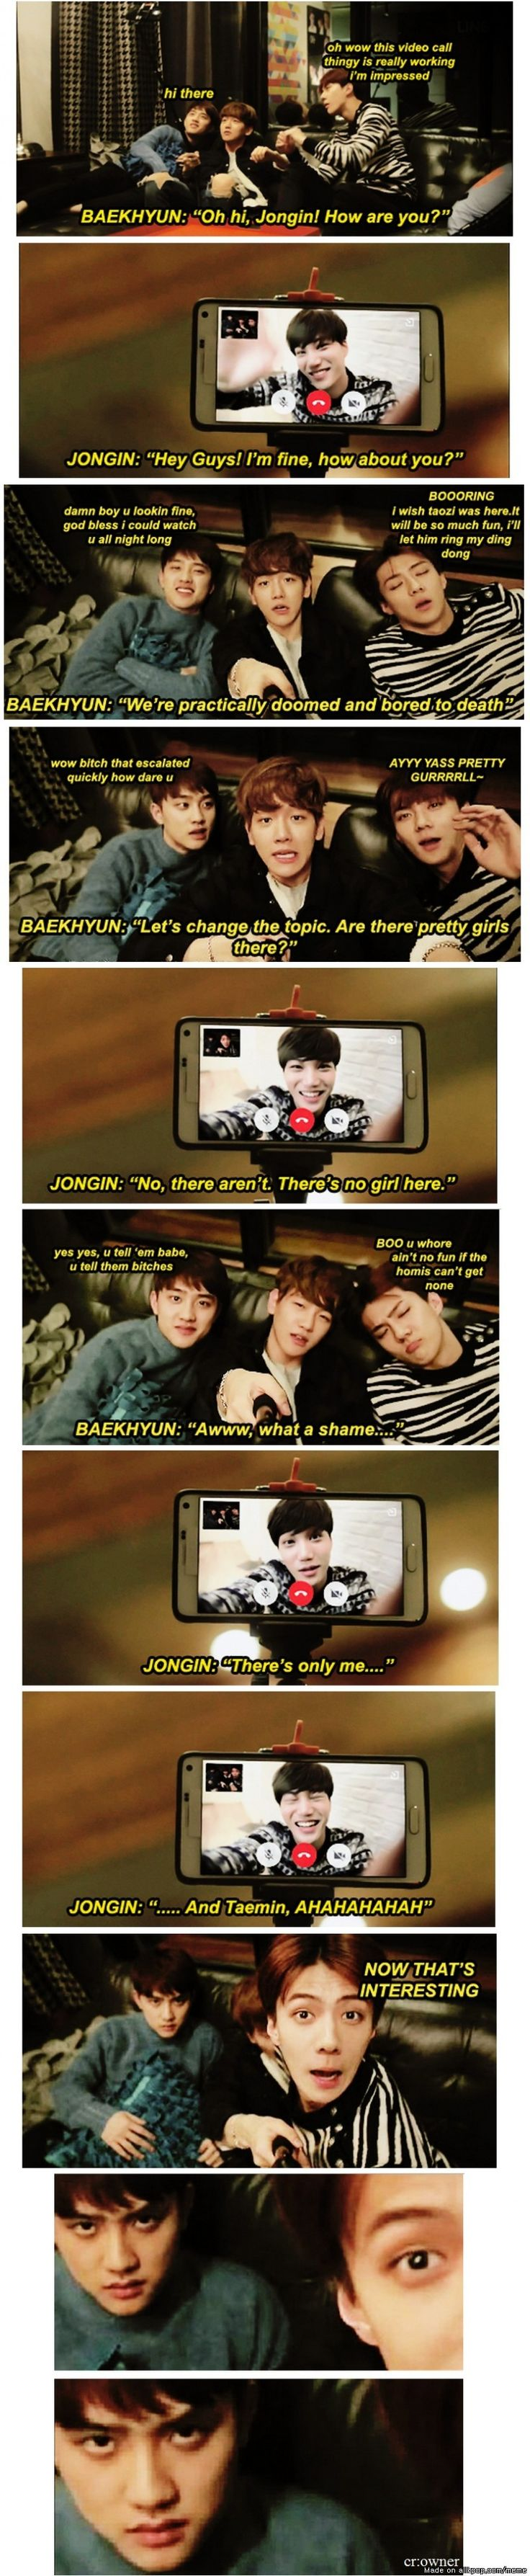 Kai and Kyungsoo = KaiSoo, there's no room for any others in Kyungsoo's world. xD